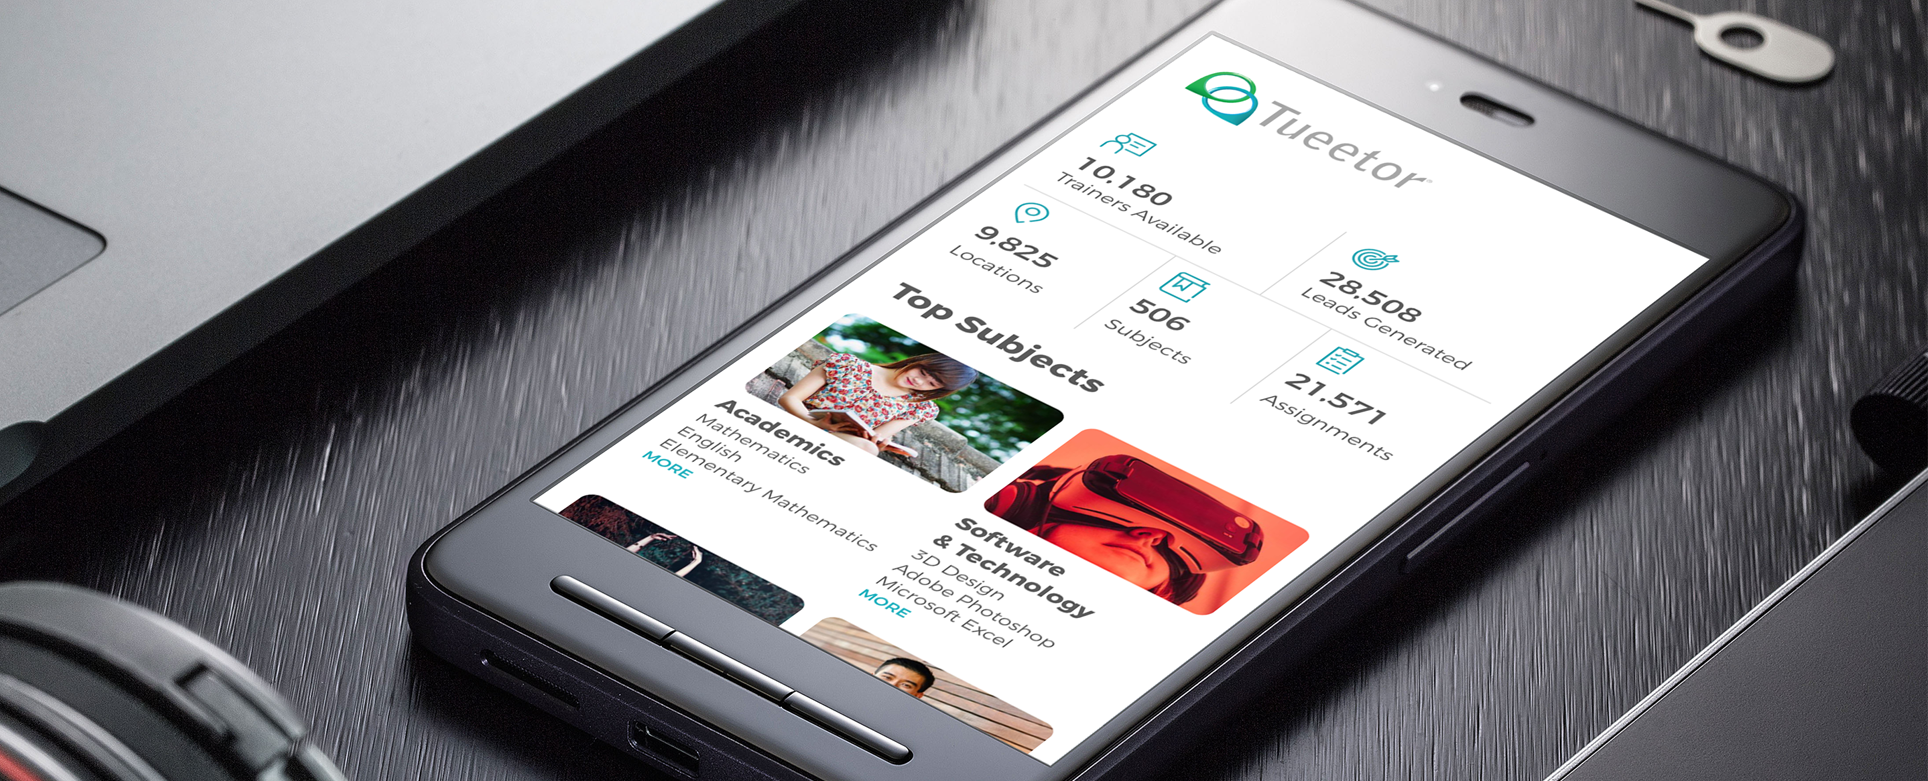 Tueetor in Mobile application